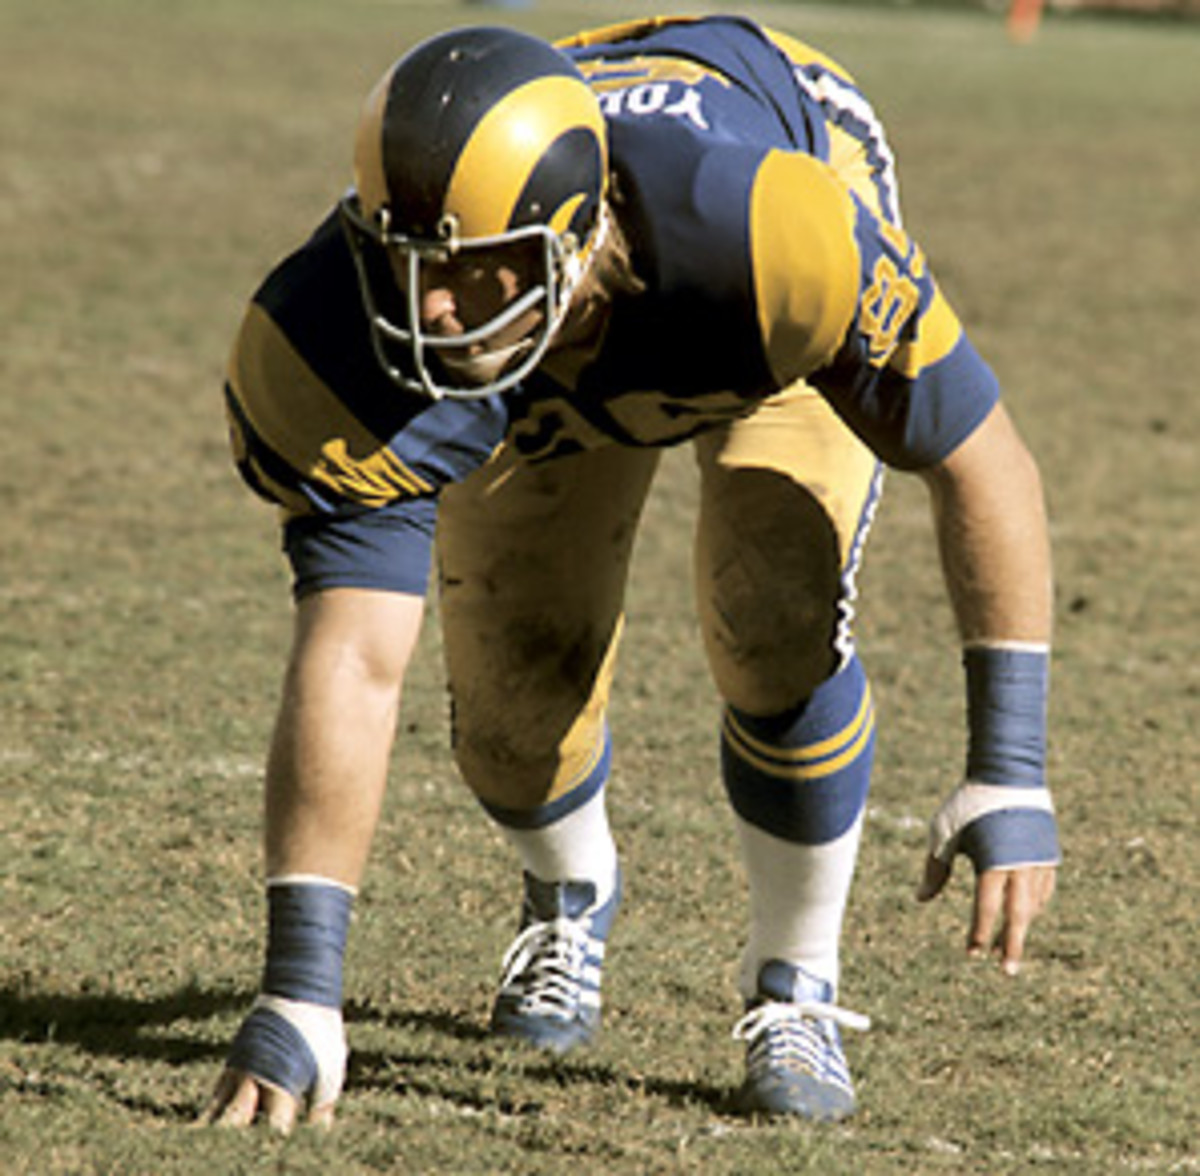 Best of the Firsts, No. 20: Jack Youngblood - Sports Illustrated